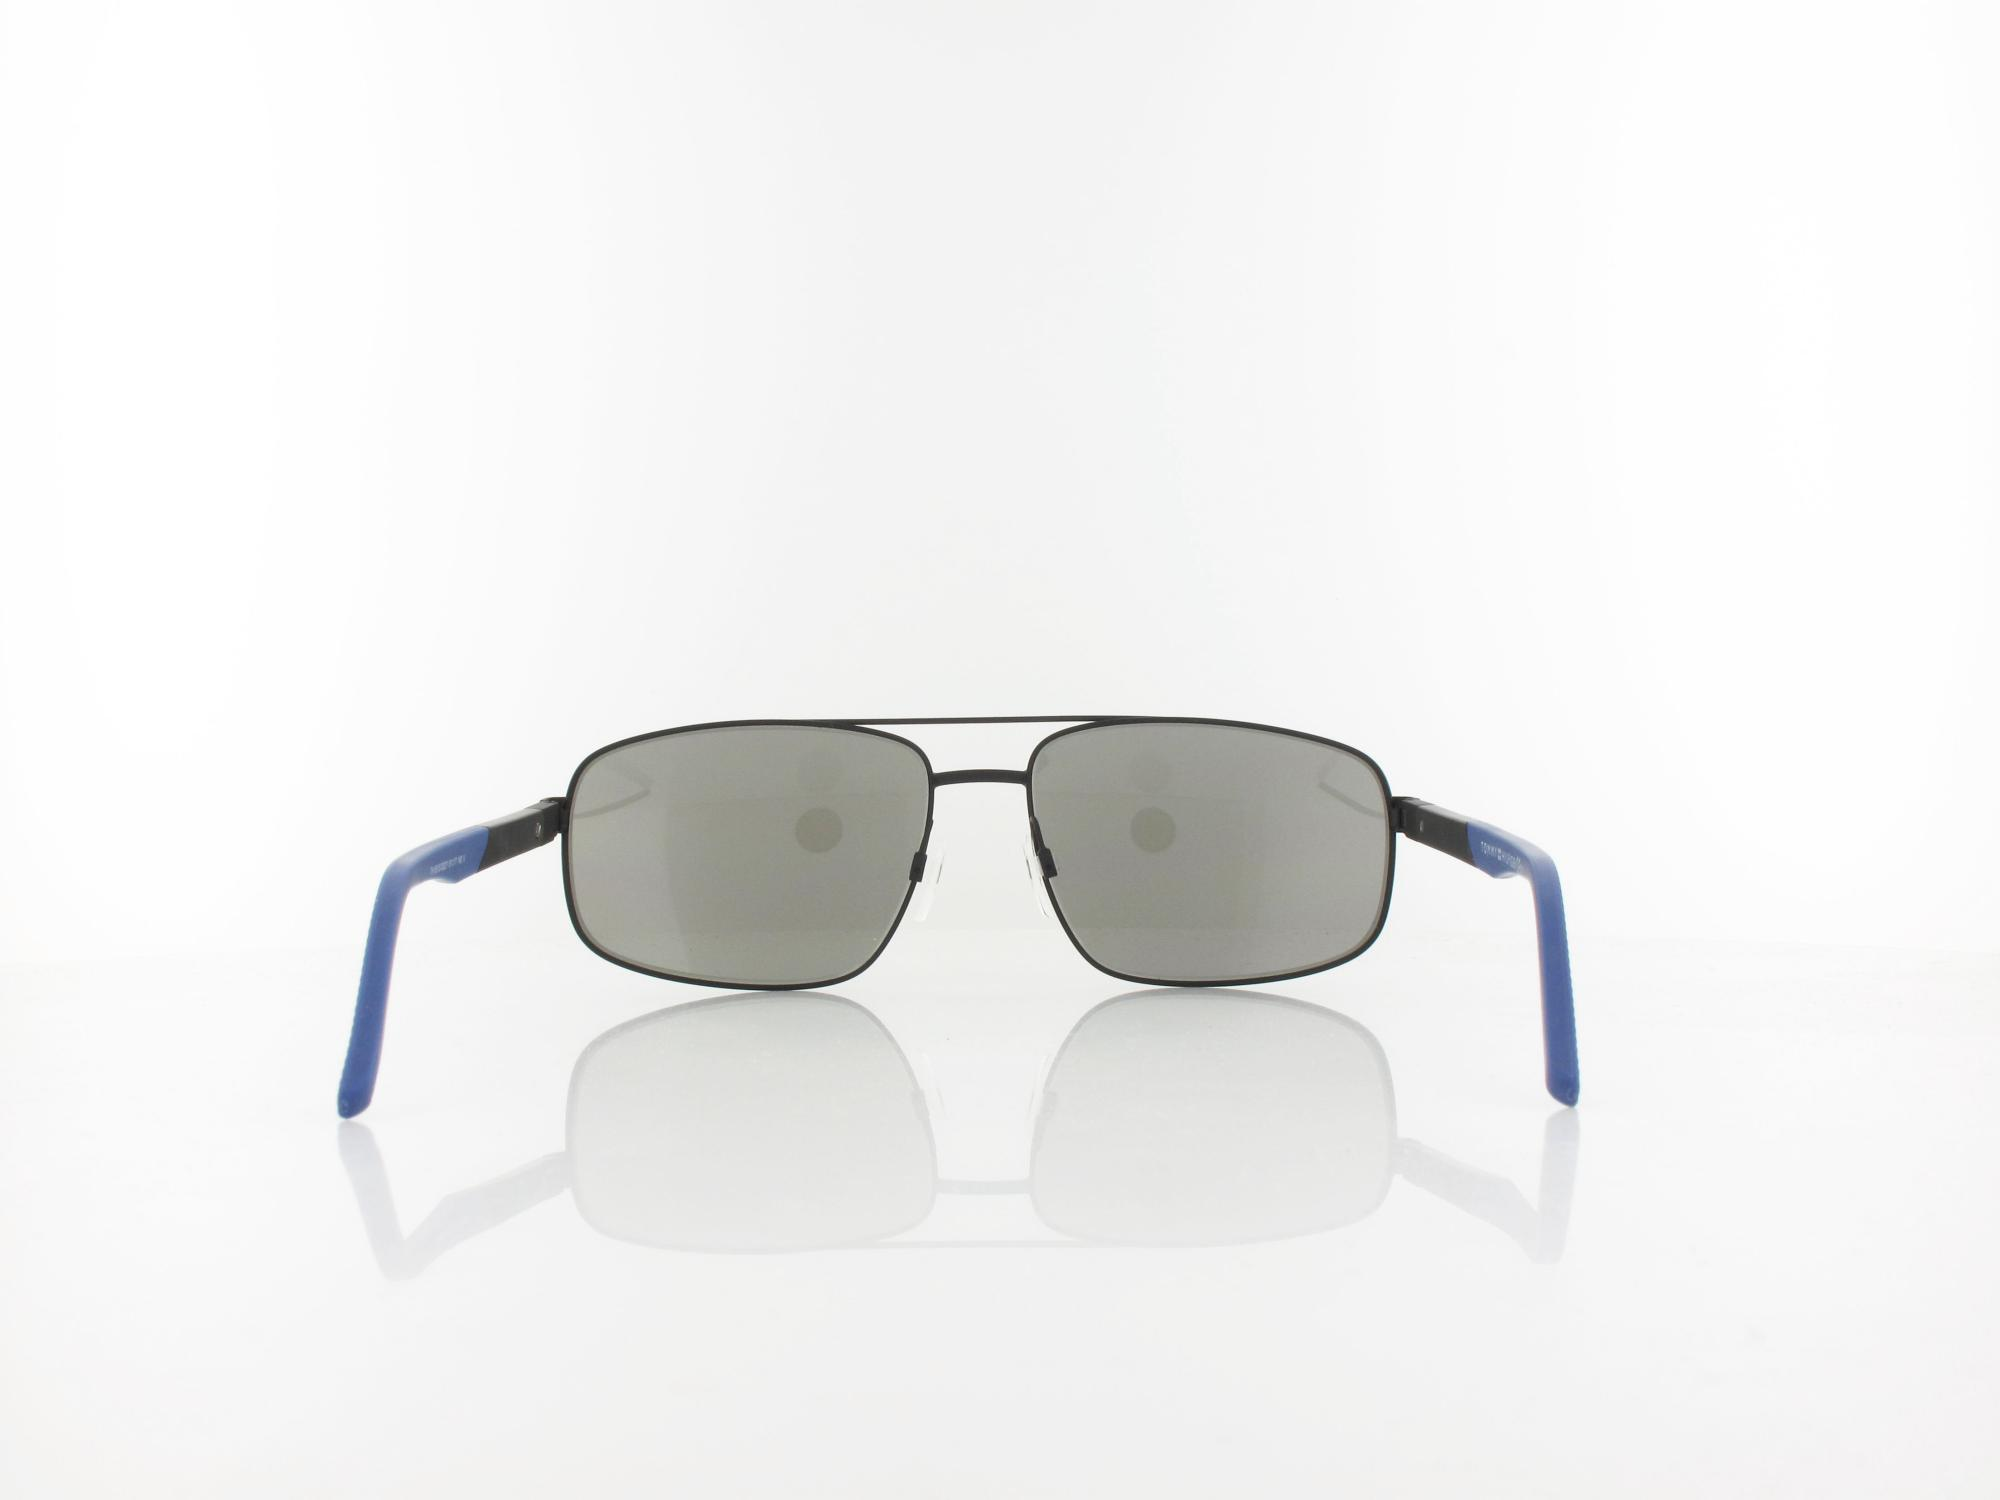 Tommy Hilfiger  | TH 1651/S  003/2Y 61 | matta black / blue mirror